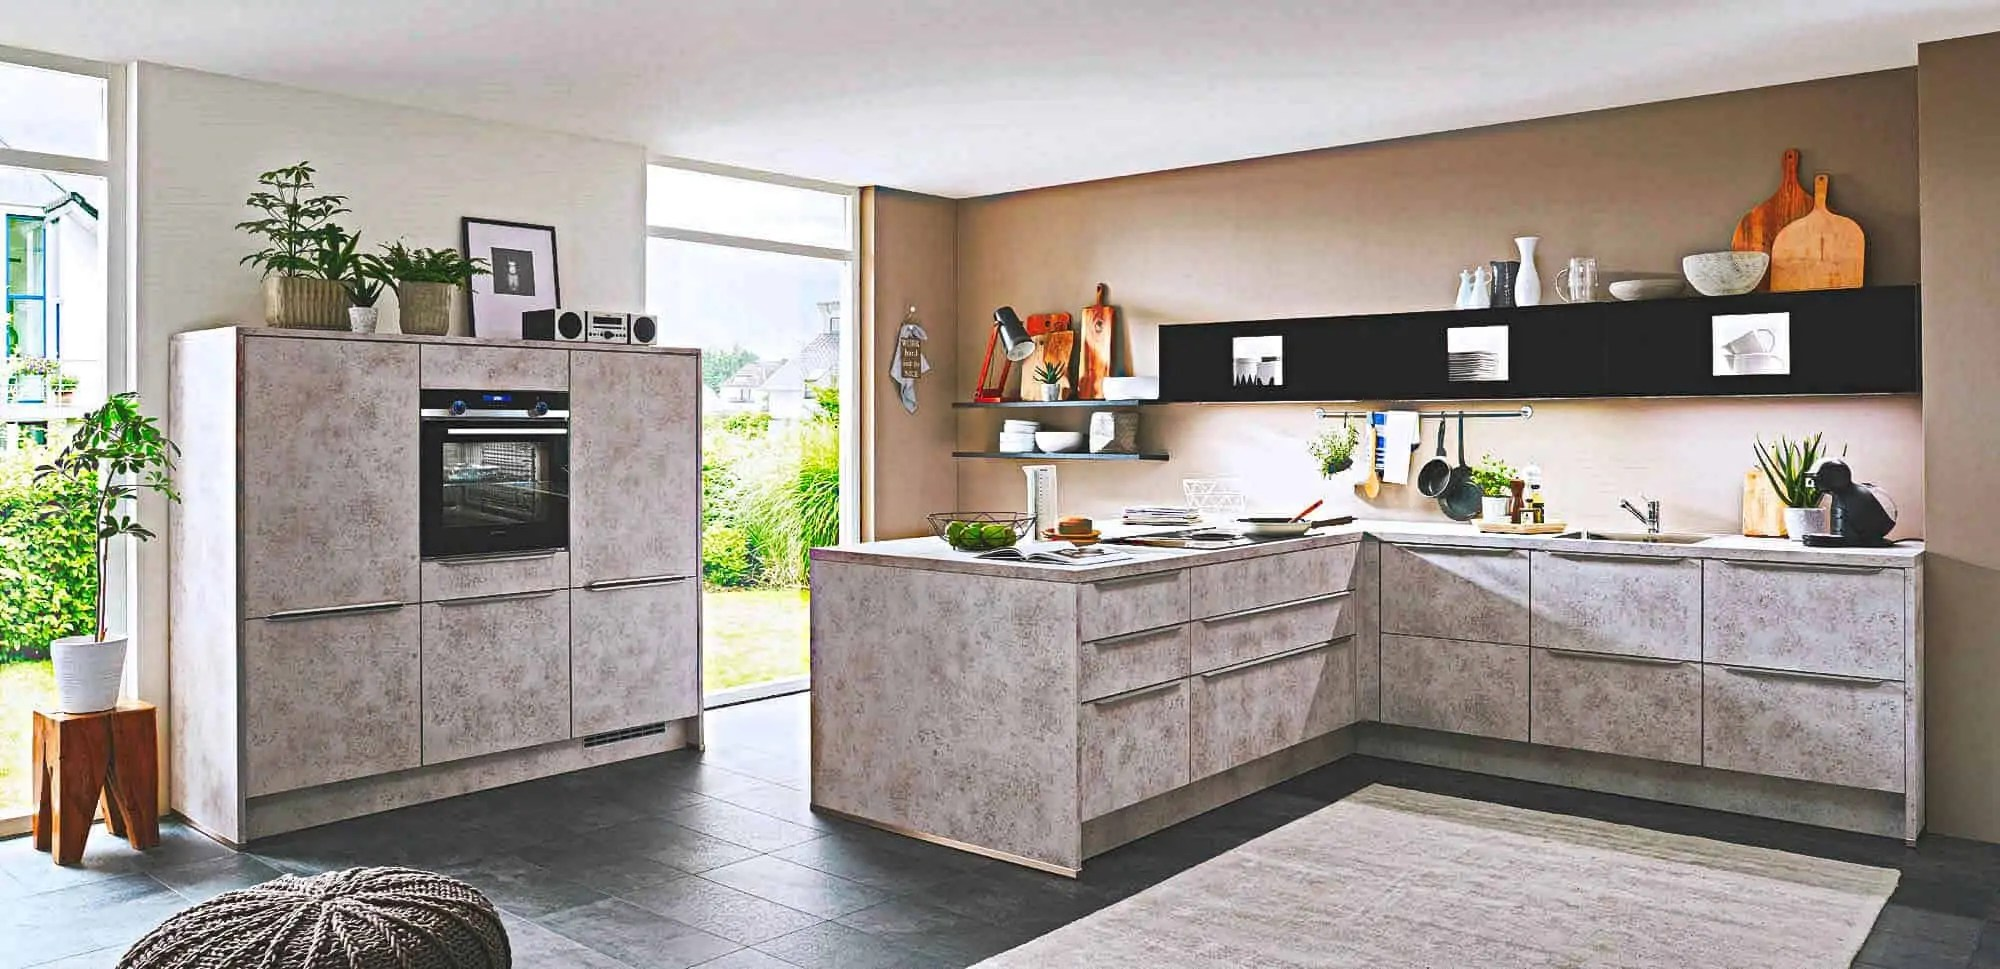 Industrial Kuche Kitchen Inspiration A Modern And Industrial